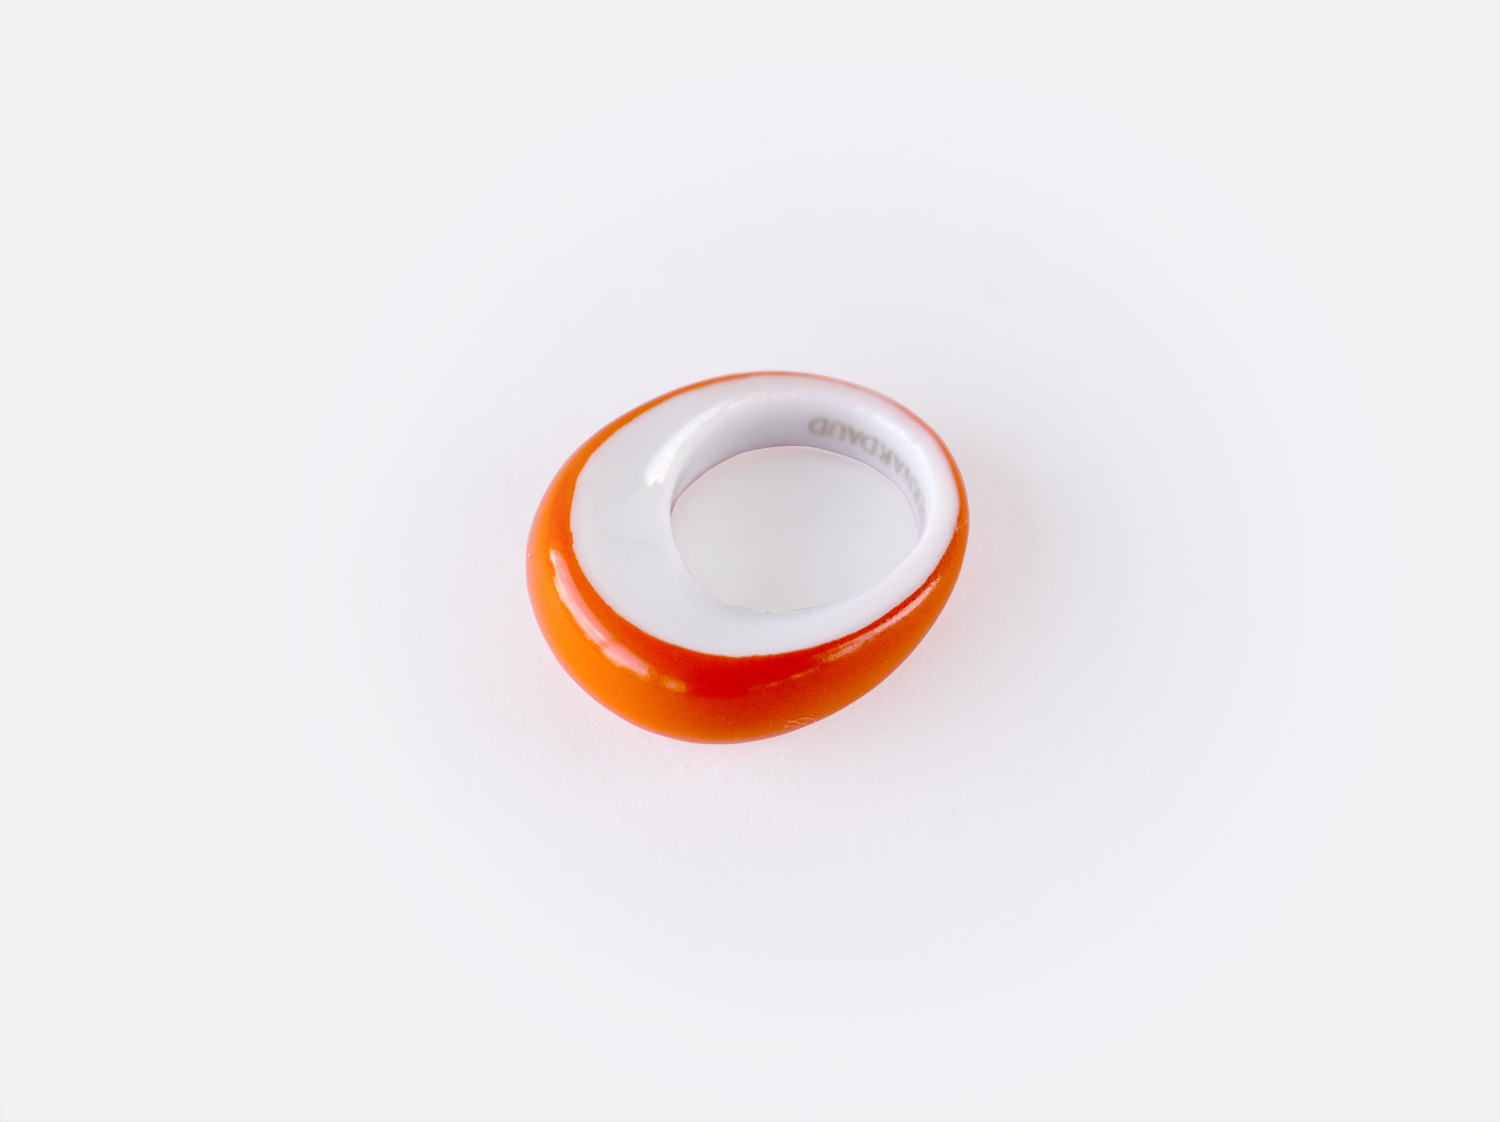 China Alba orange Ring of the collection ALBA ORANGE | Bernardaud